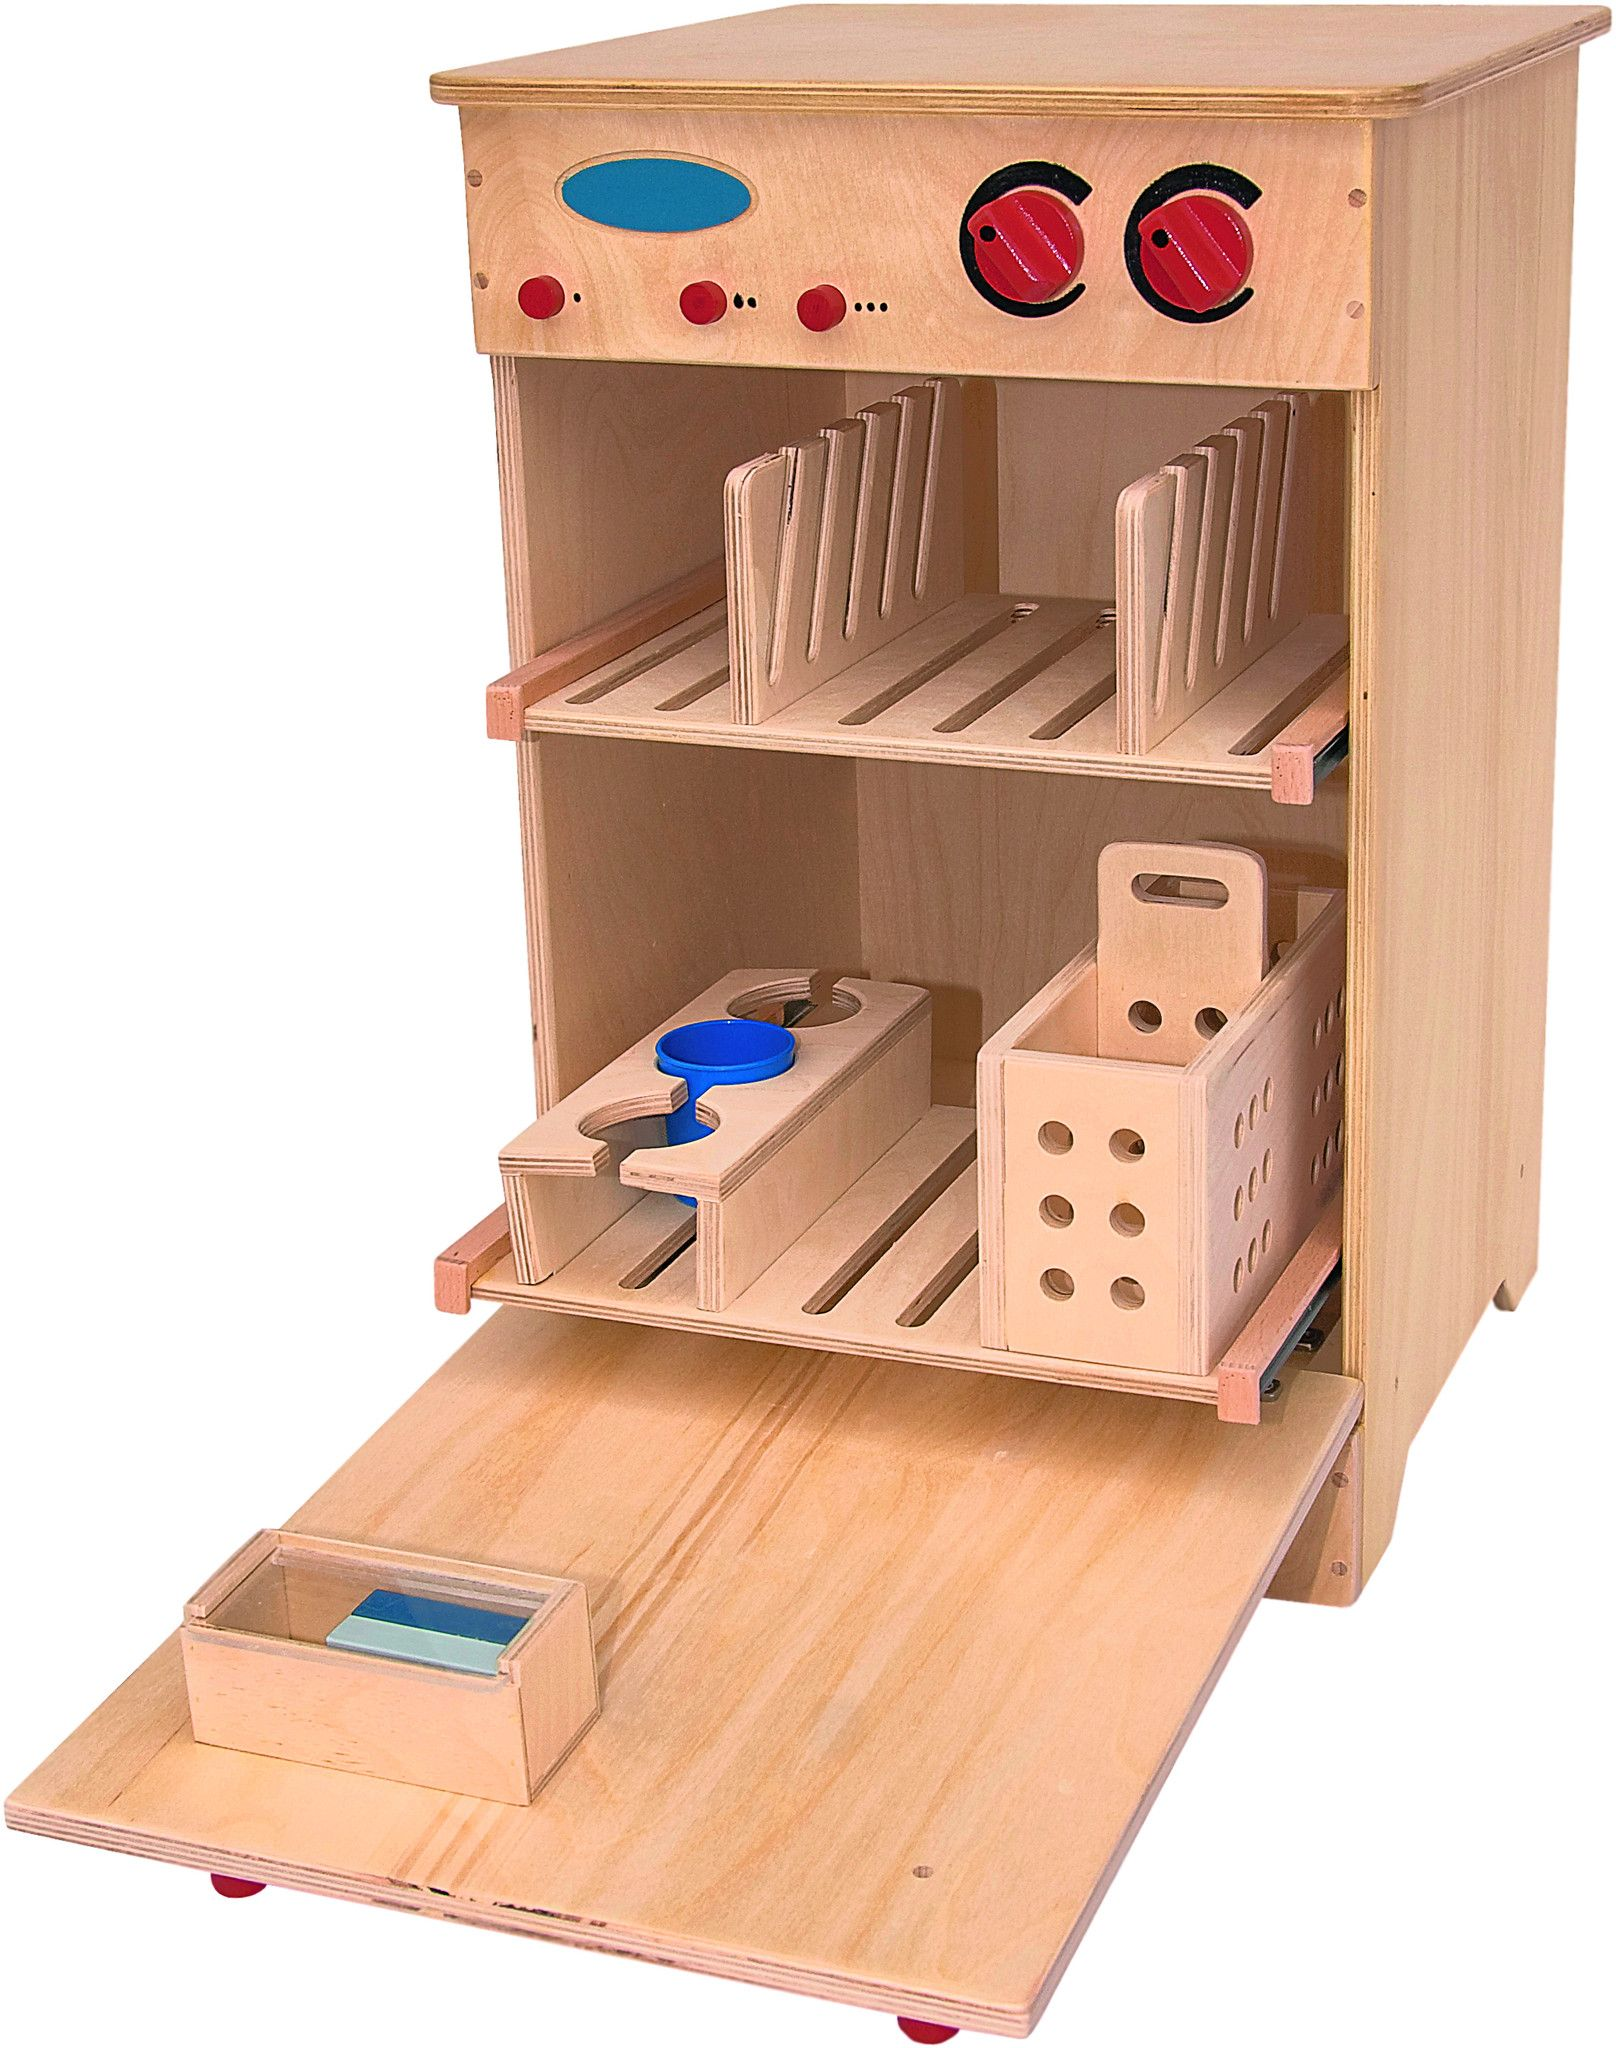 wooden dishwasher | imaginative play | dishwasher, wooden